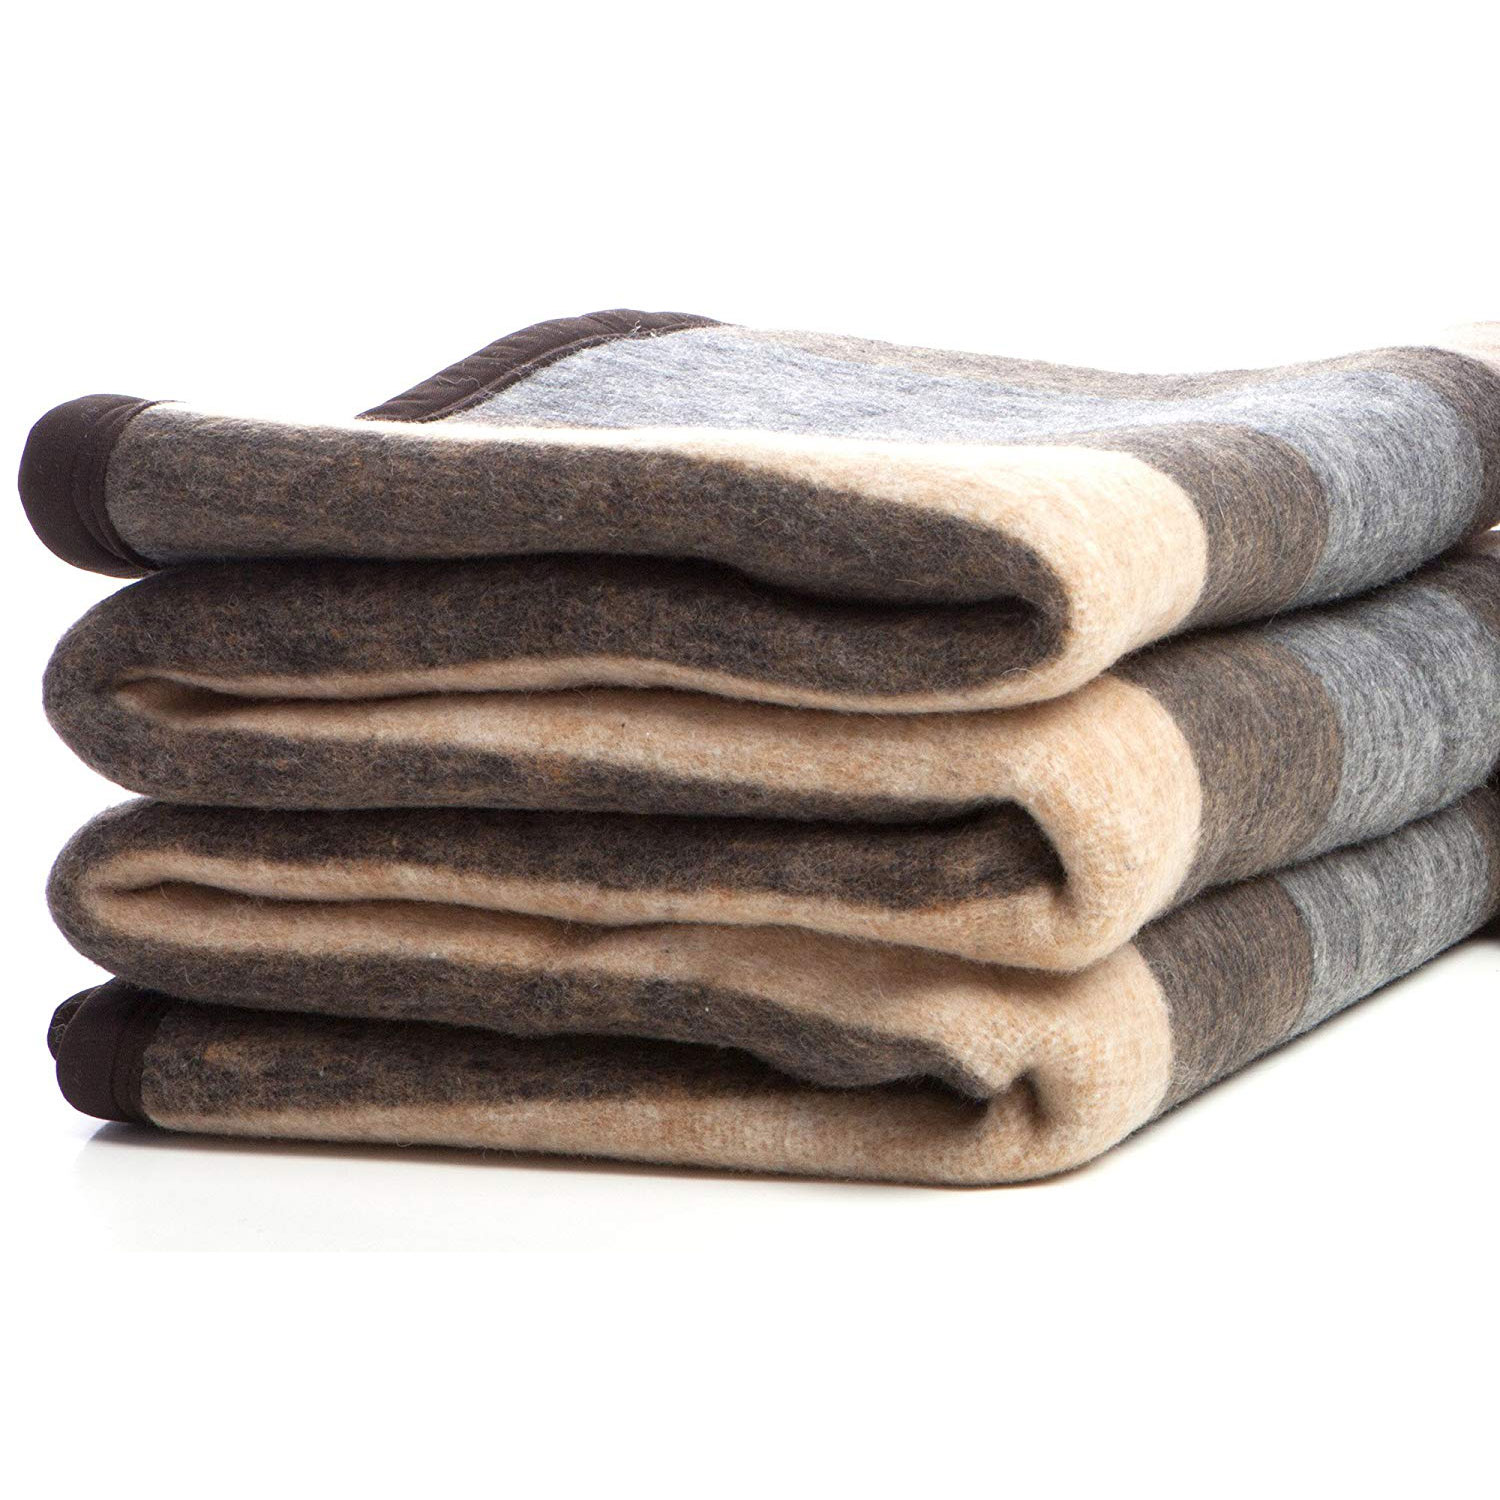 Best Camping Wool Blankets 2021